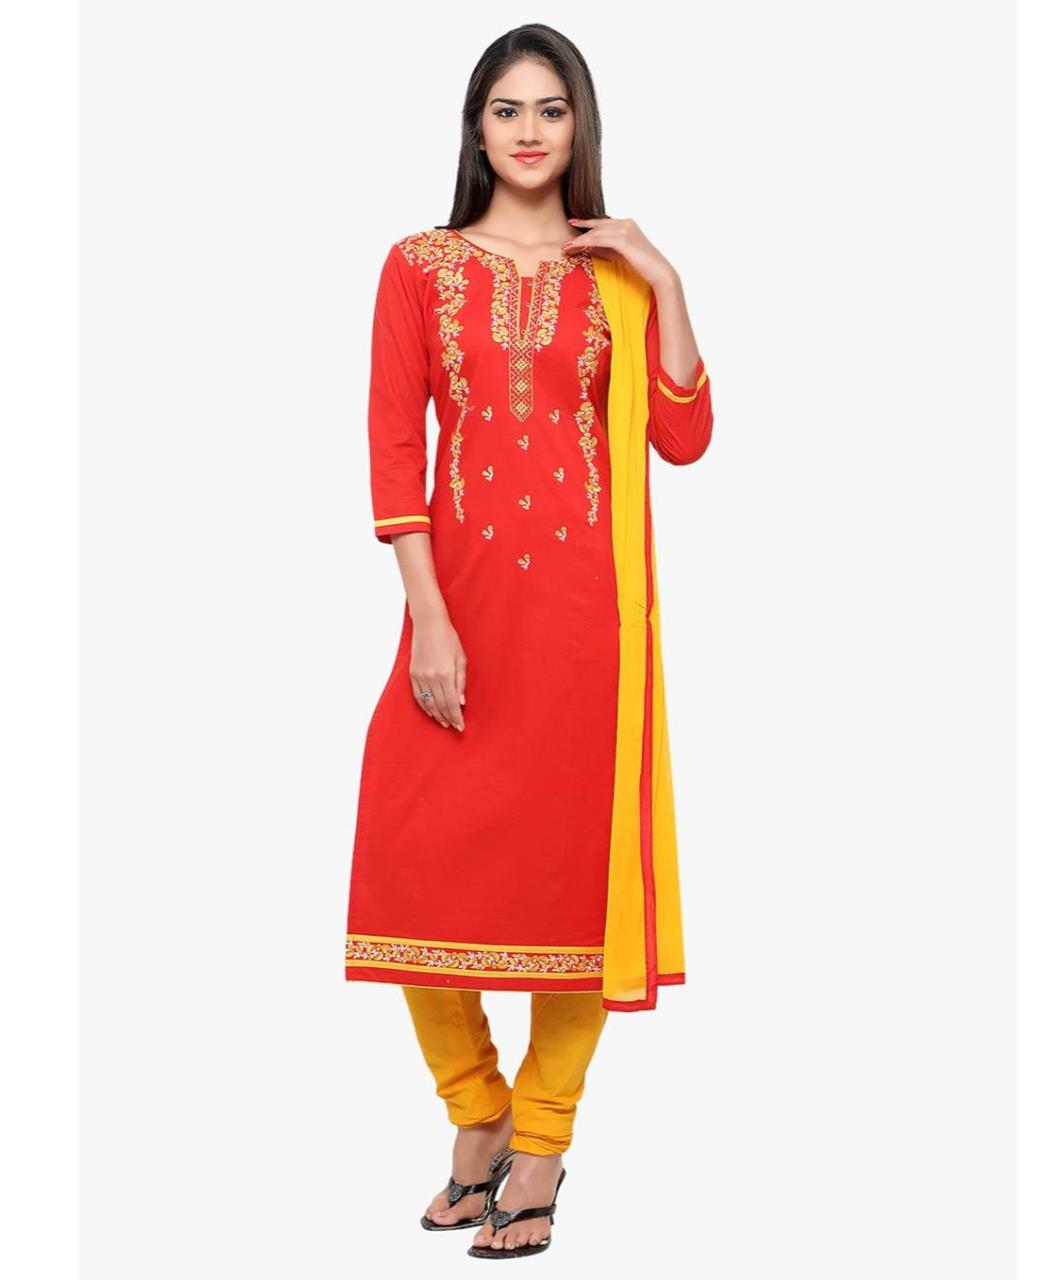 Embroidered Cotton Red Straight Cut Salwar